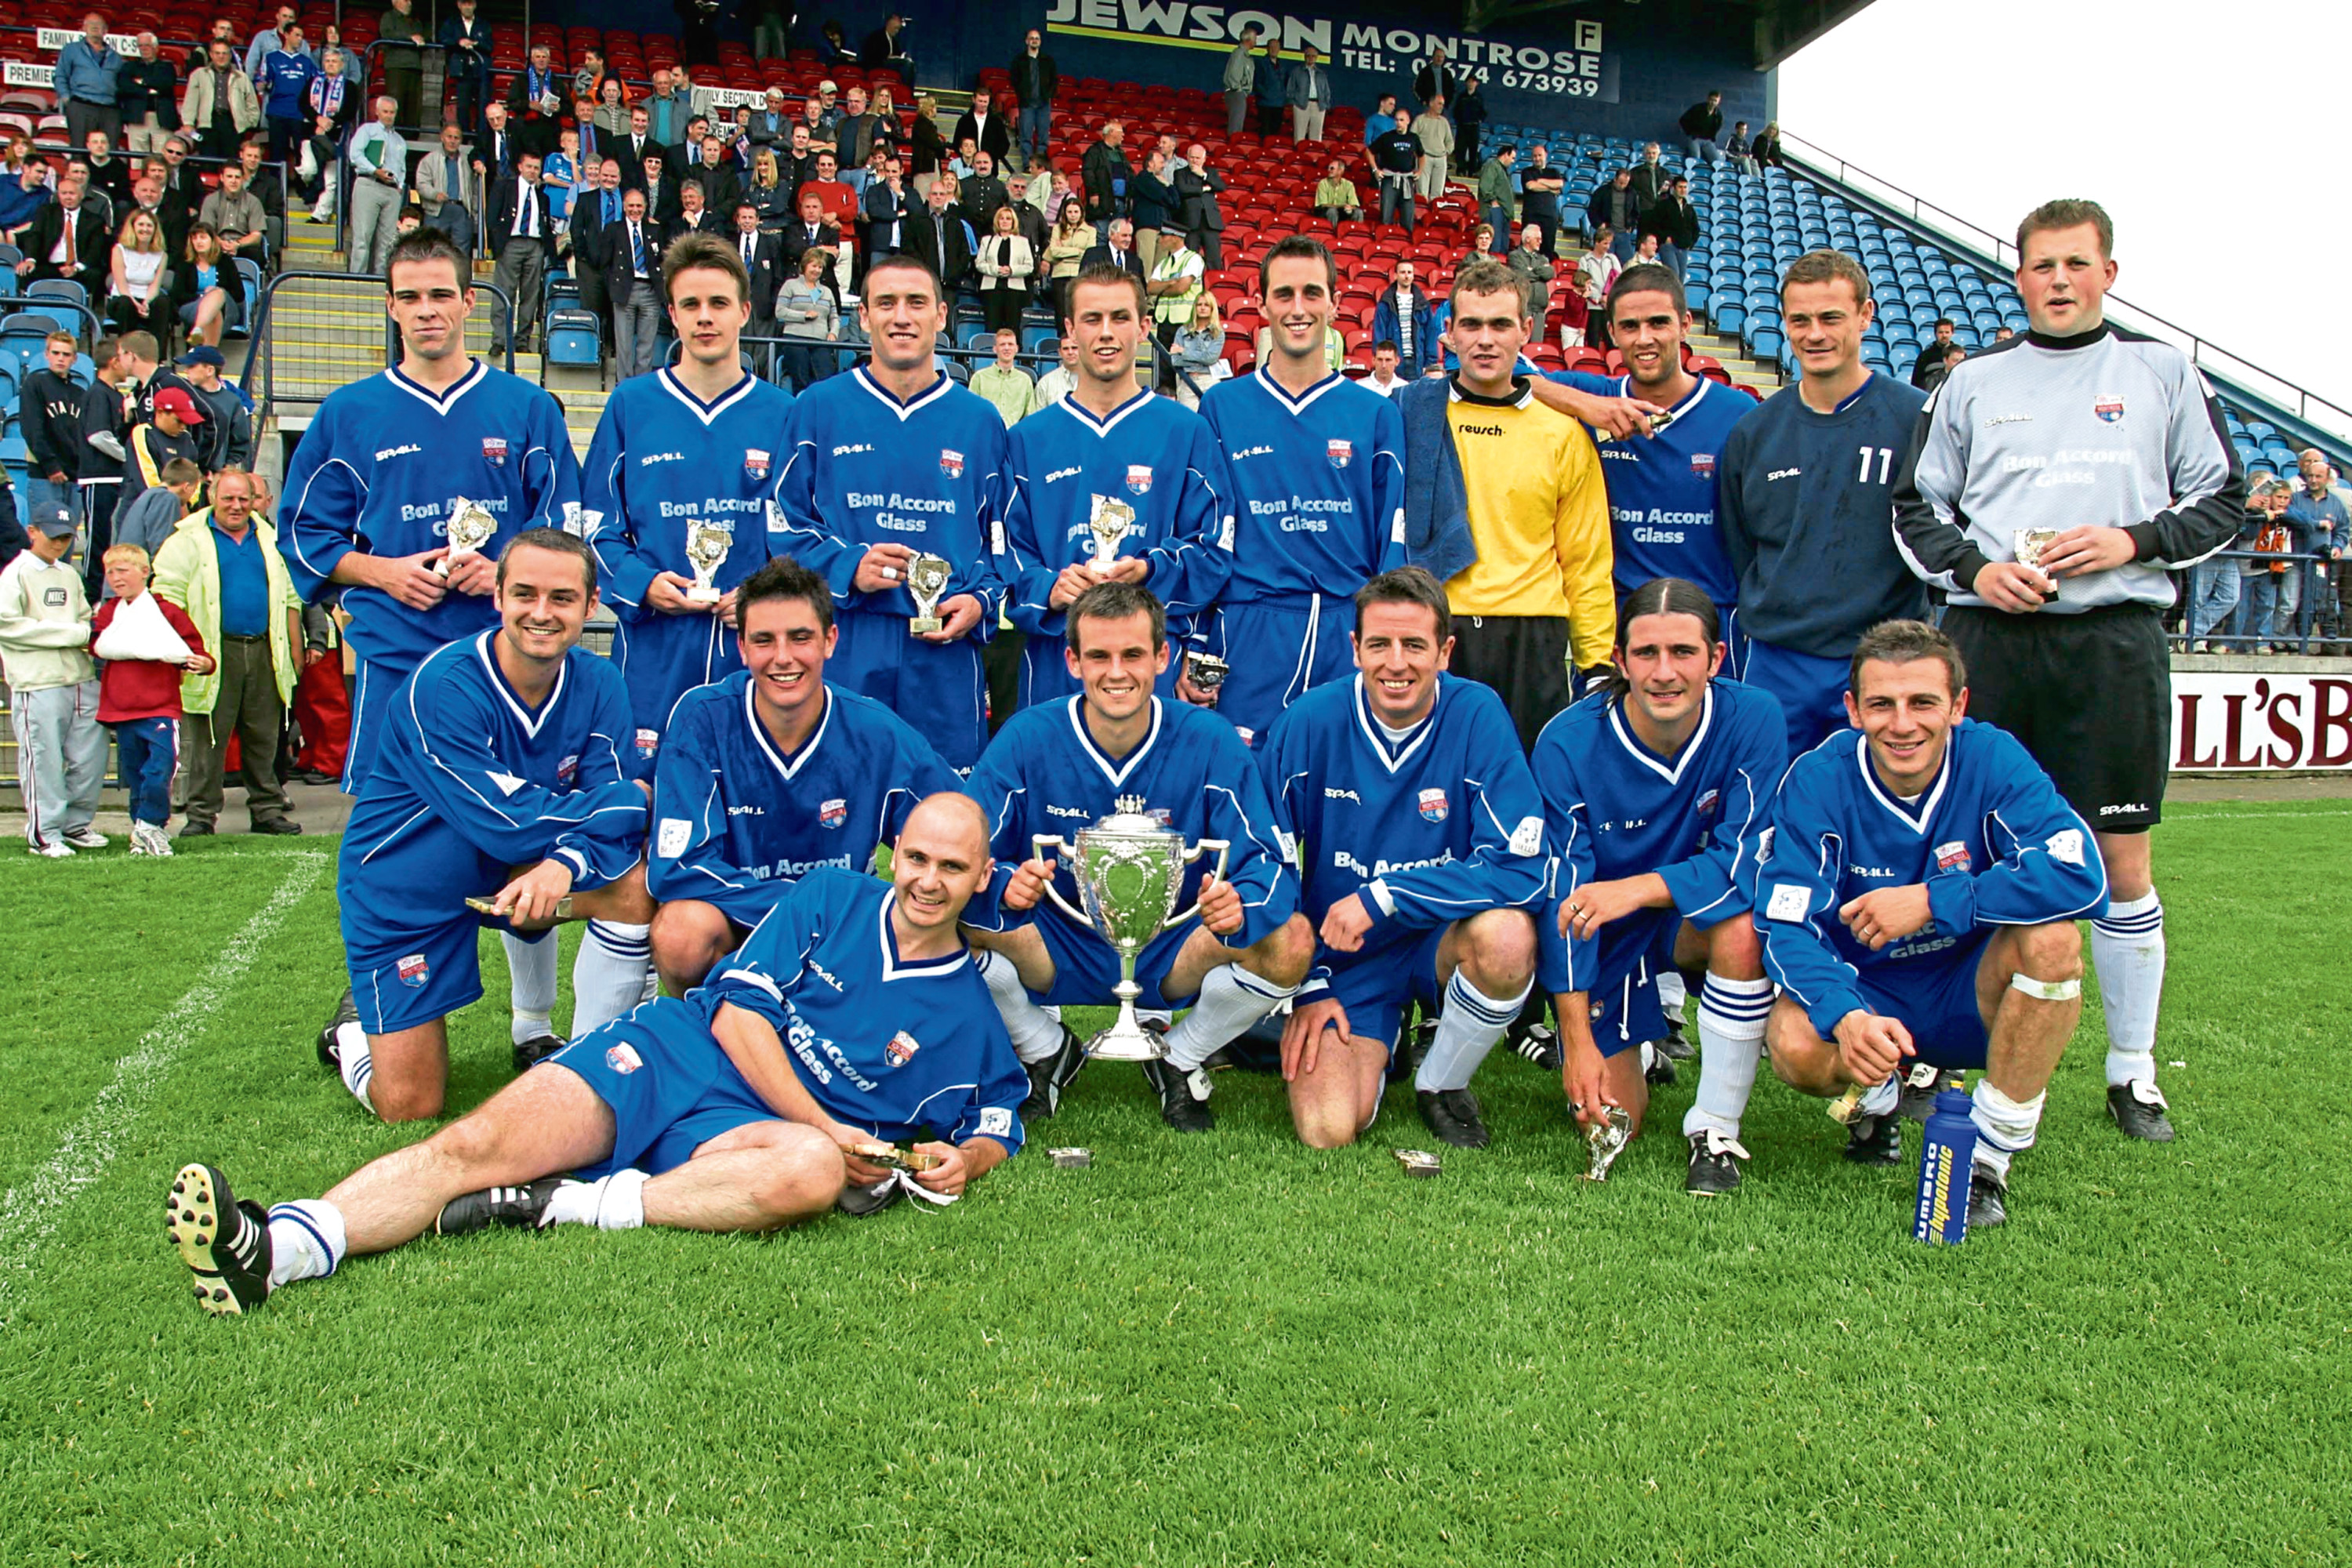 The Montrose team with the trophy after they beat Dundee United in the 2002 Forfarshire Cup Final